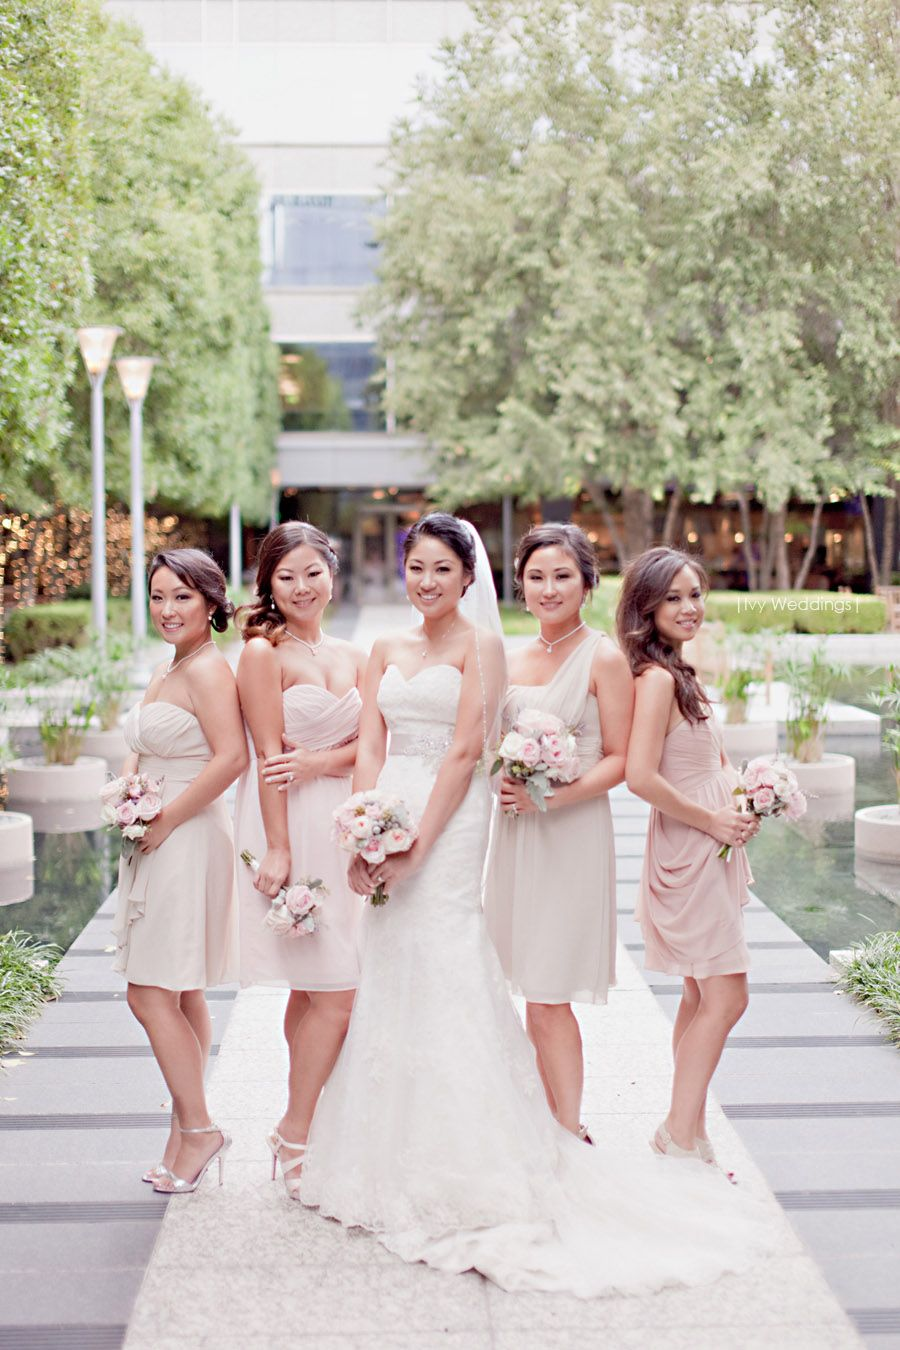 Mix matched bridesmaids dresses bridesmaid dresses pinterest mix matched bridesmaids dresses ombrellifo Image collections